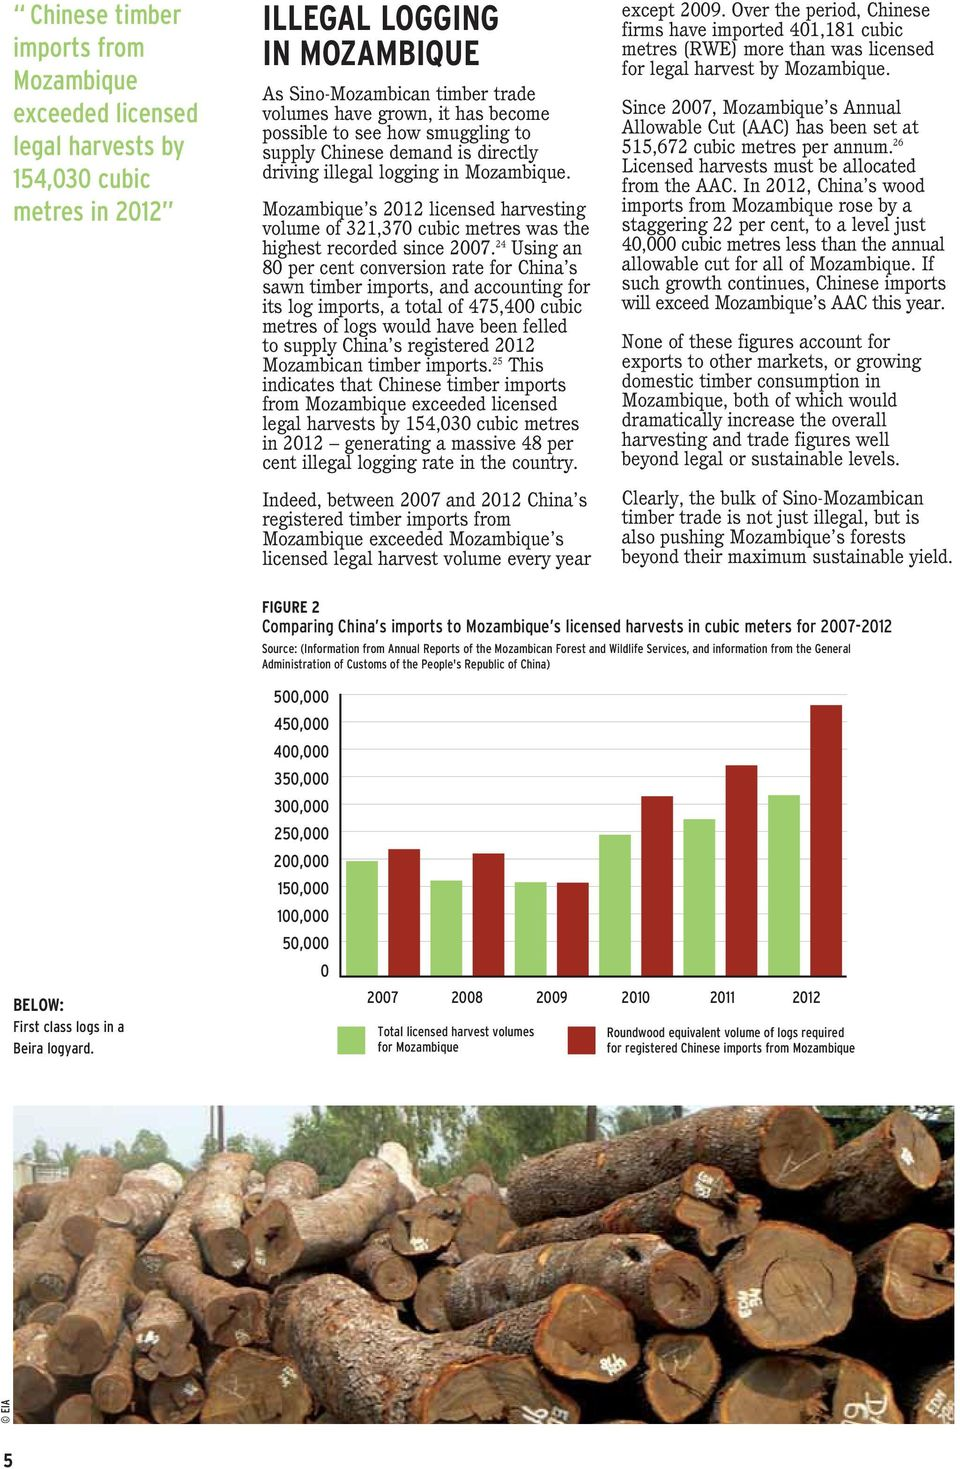 Mozambique s 2012 licensed harvesting volume of 321,370 cubic metres was the highest recorded since 2007.